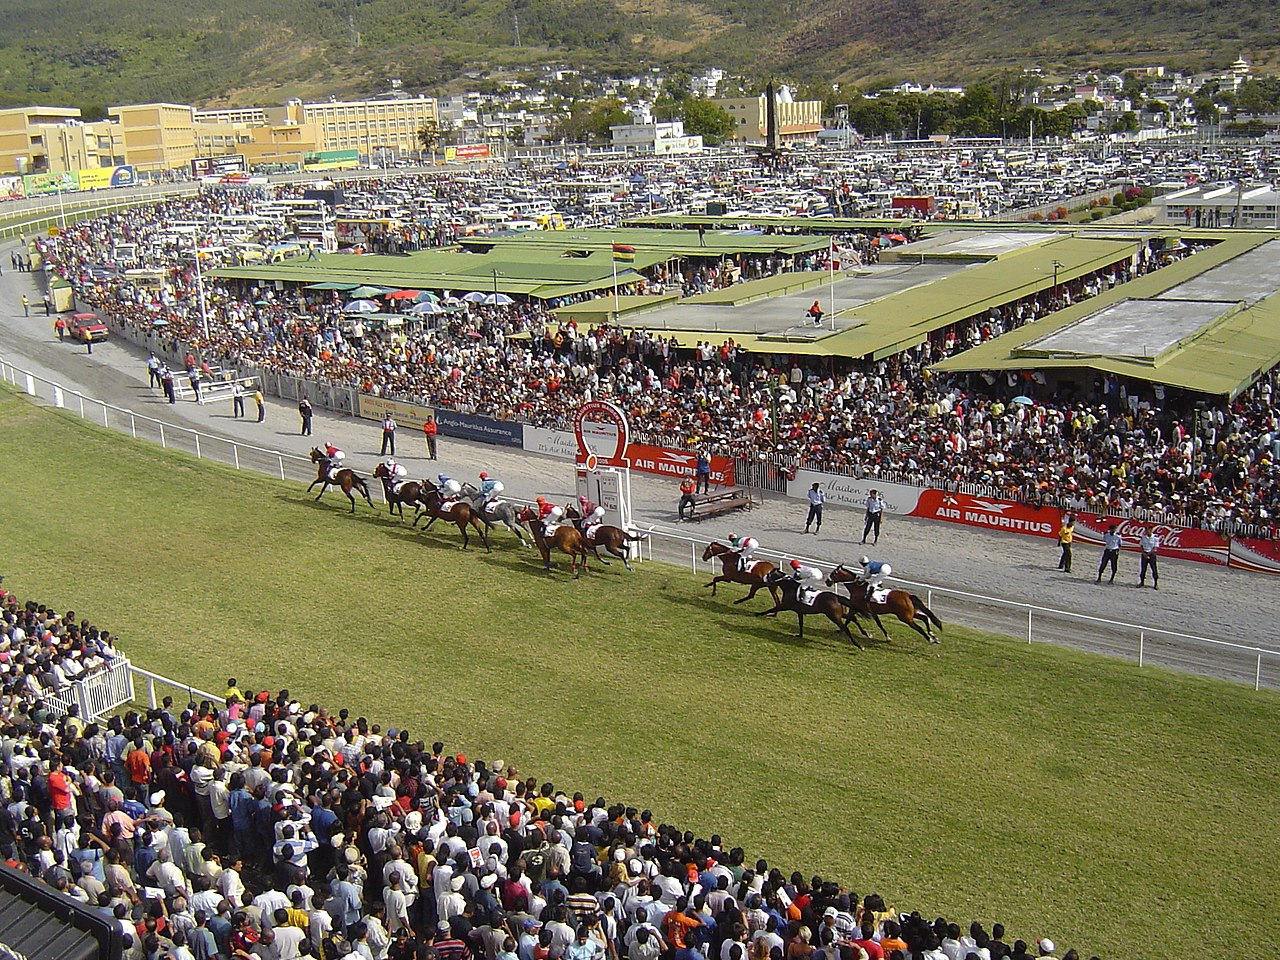 Champ de Mars Racecourse - Things to Do in Mauritius